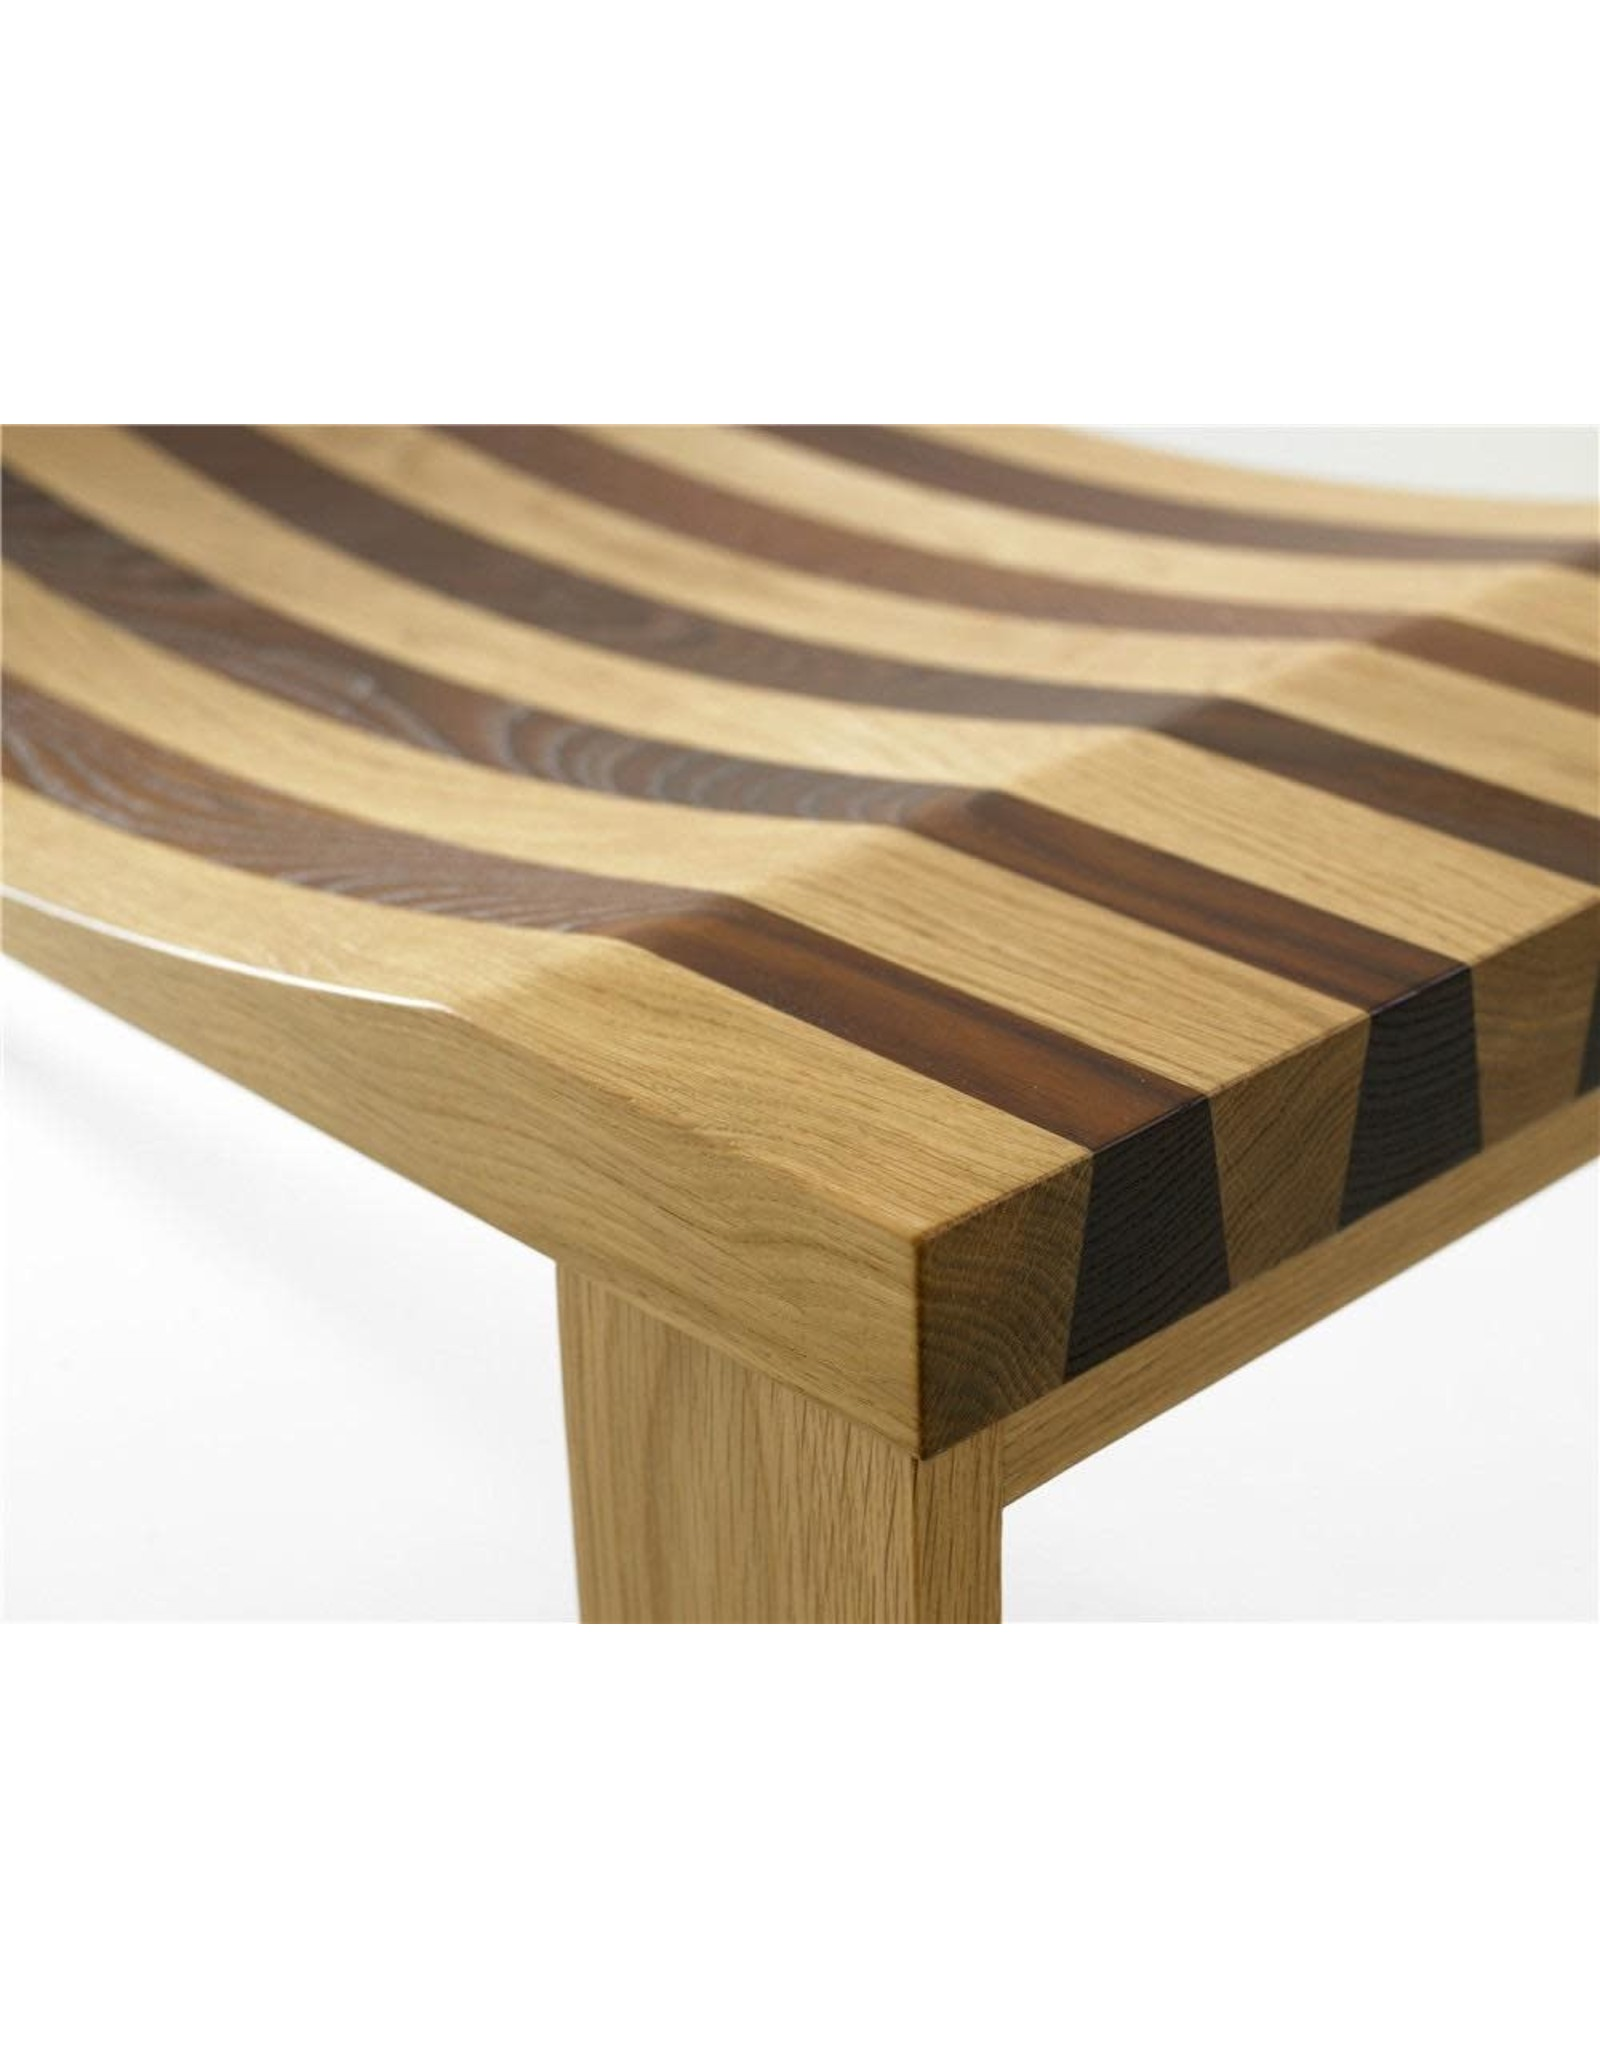 SIDE BY SIDE 4-SEATER BENCH